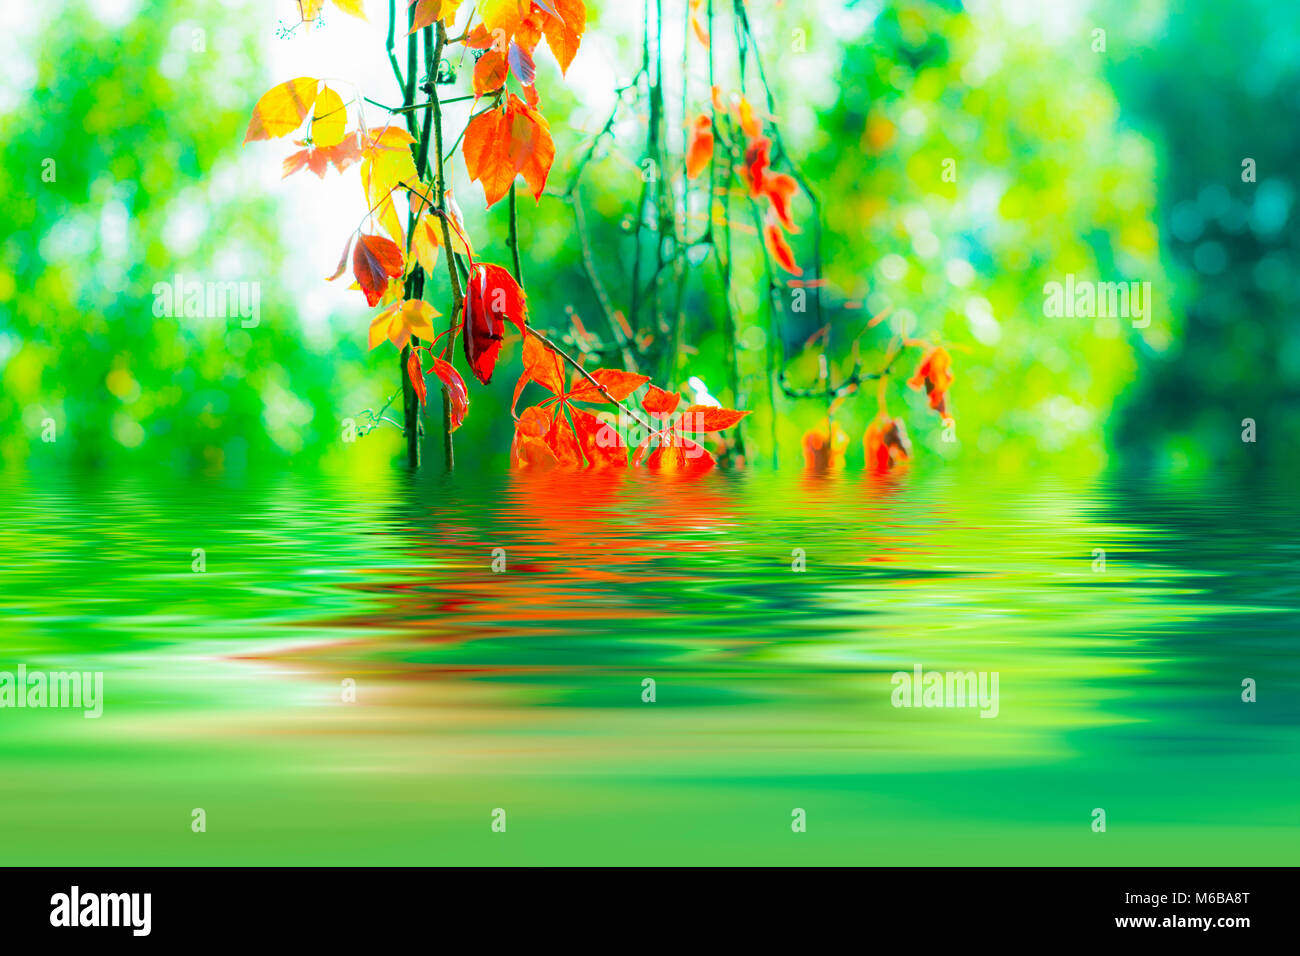 backround with autumn leaves stock photo 176041176 alamy